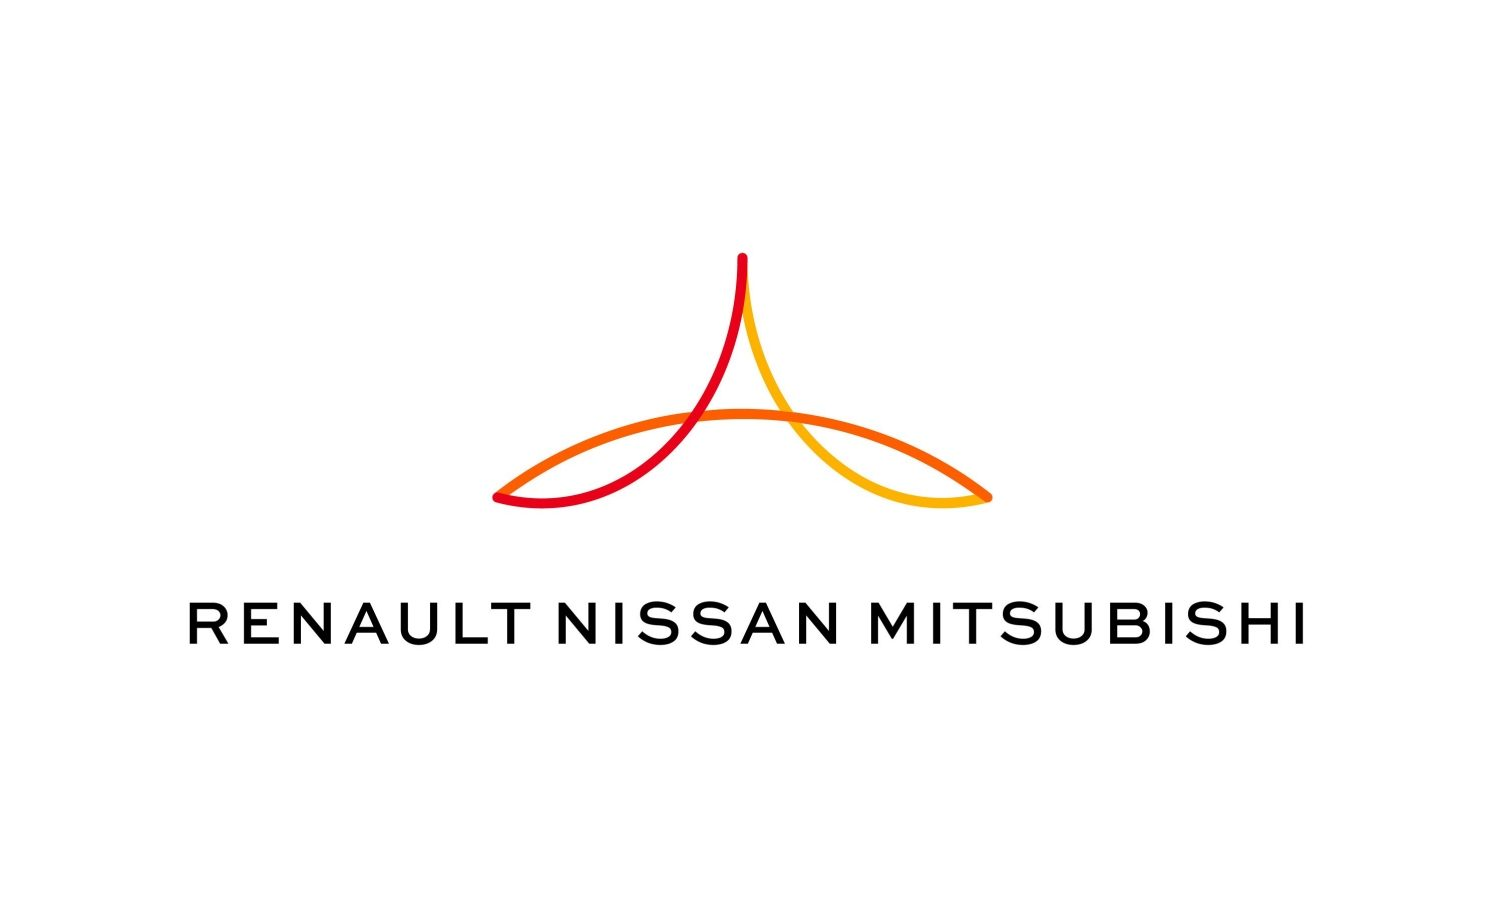 RENAULT-NISSAN-MITSUBISHI ACHIEVES RECORD FIRST-HALF SALES OF 5.54 MILLION UNITS